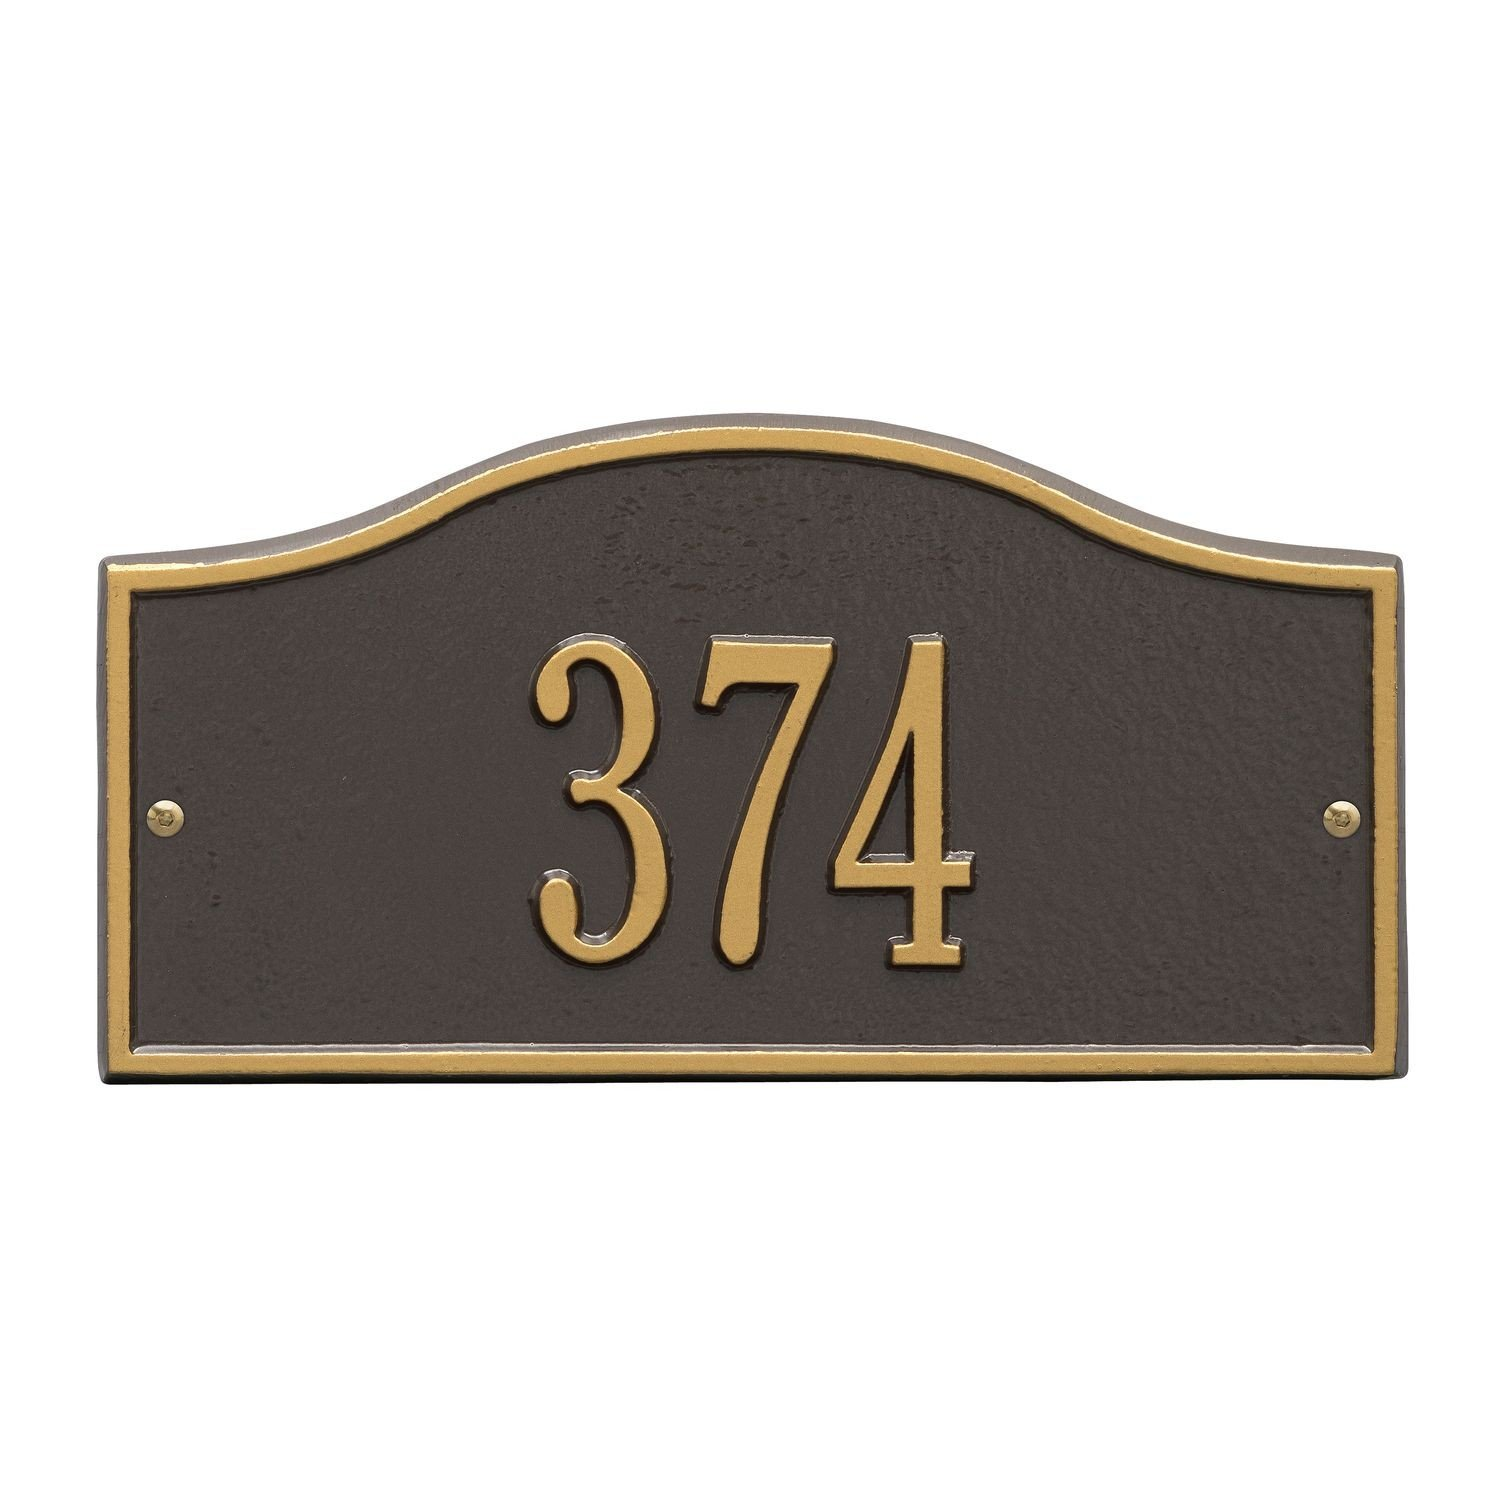 Whitehall Personalized Cast Metal Address Plaque - Small Rolling Hills Custom House Number Sign - 12'' x 6'' - Allows Special Characters - Bronze/Gold